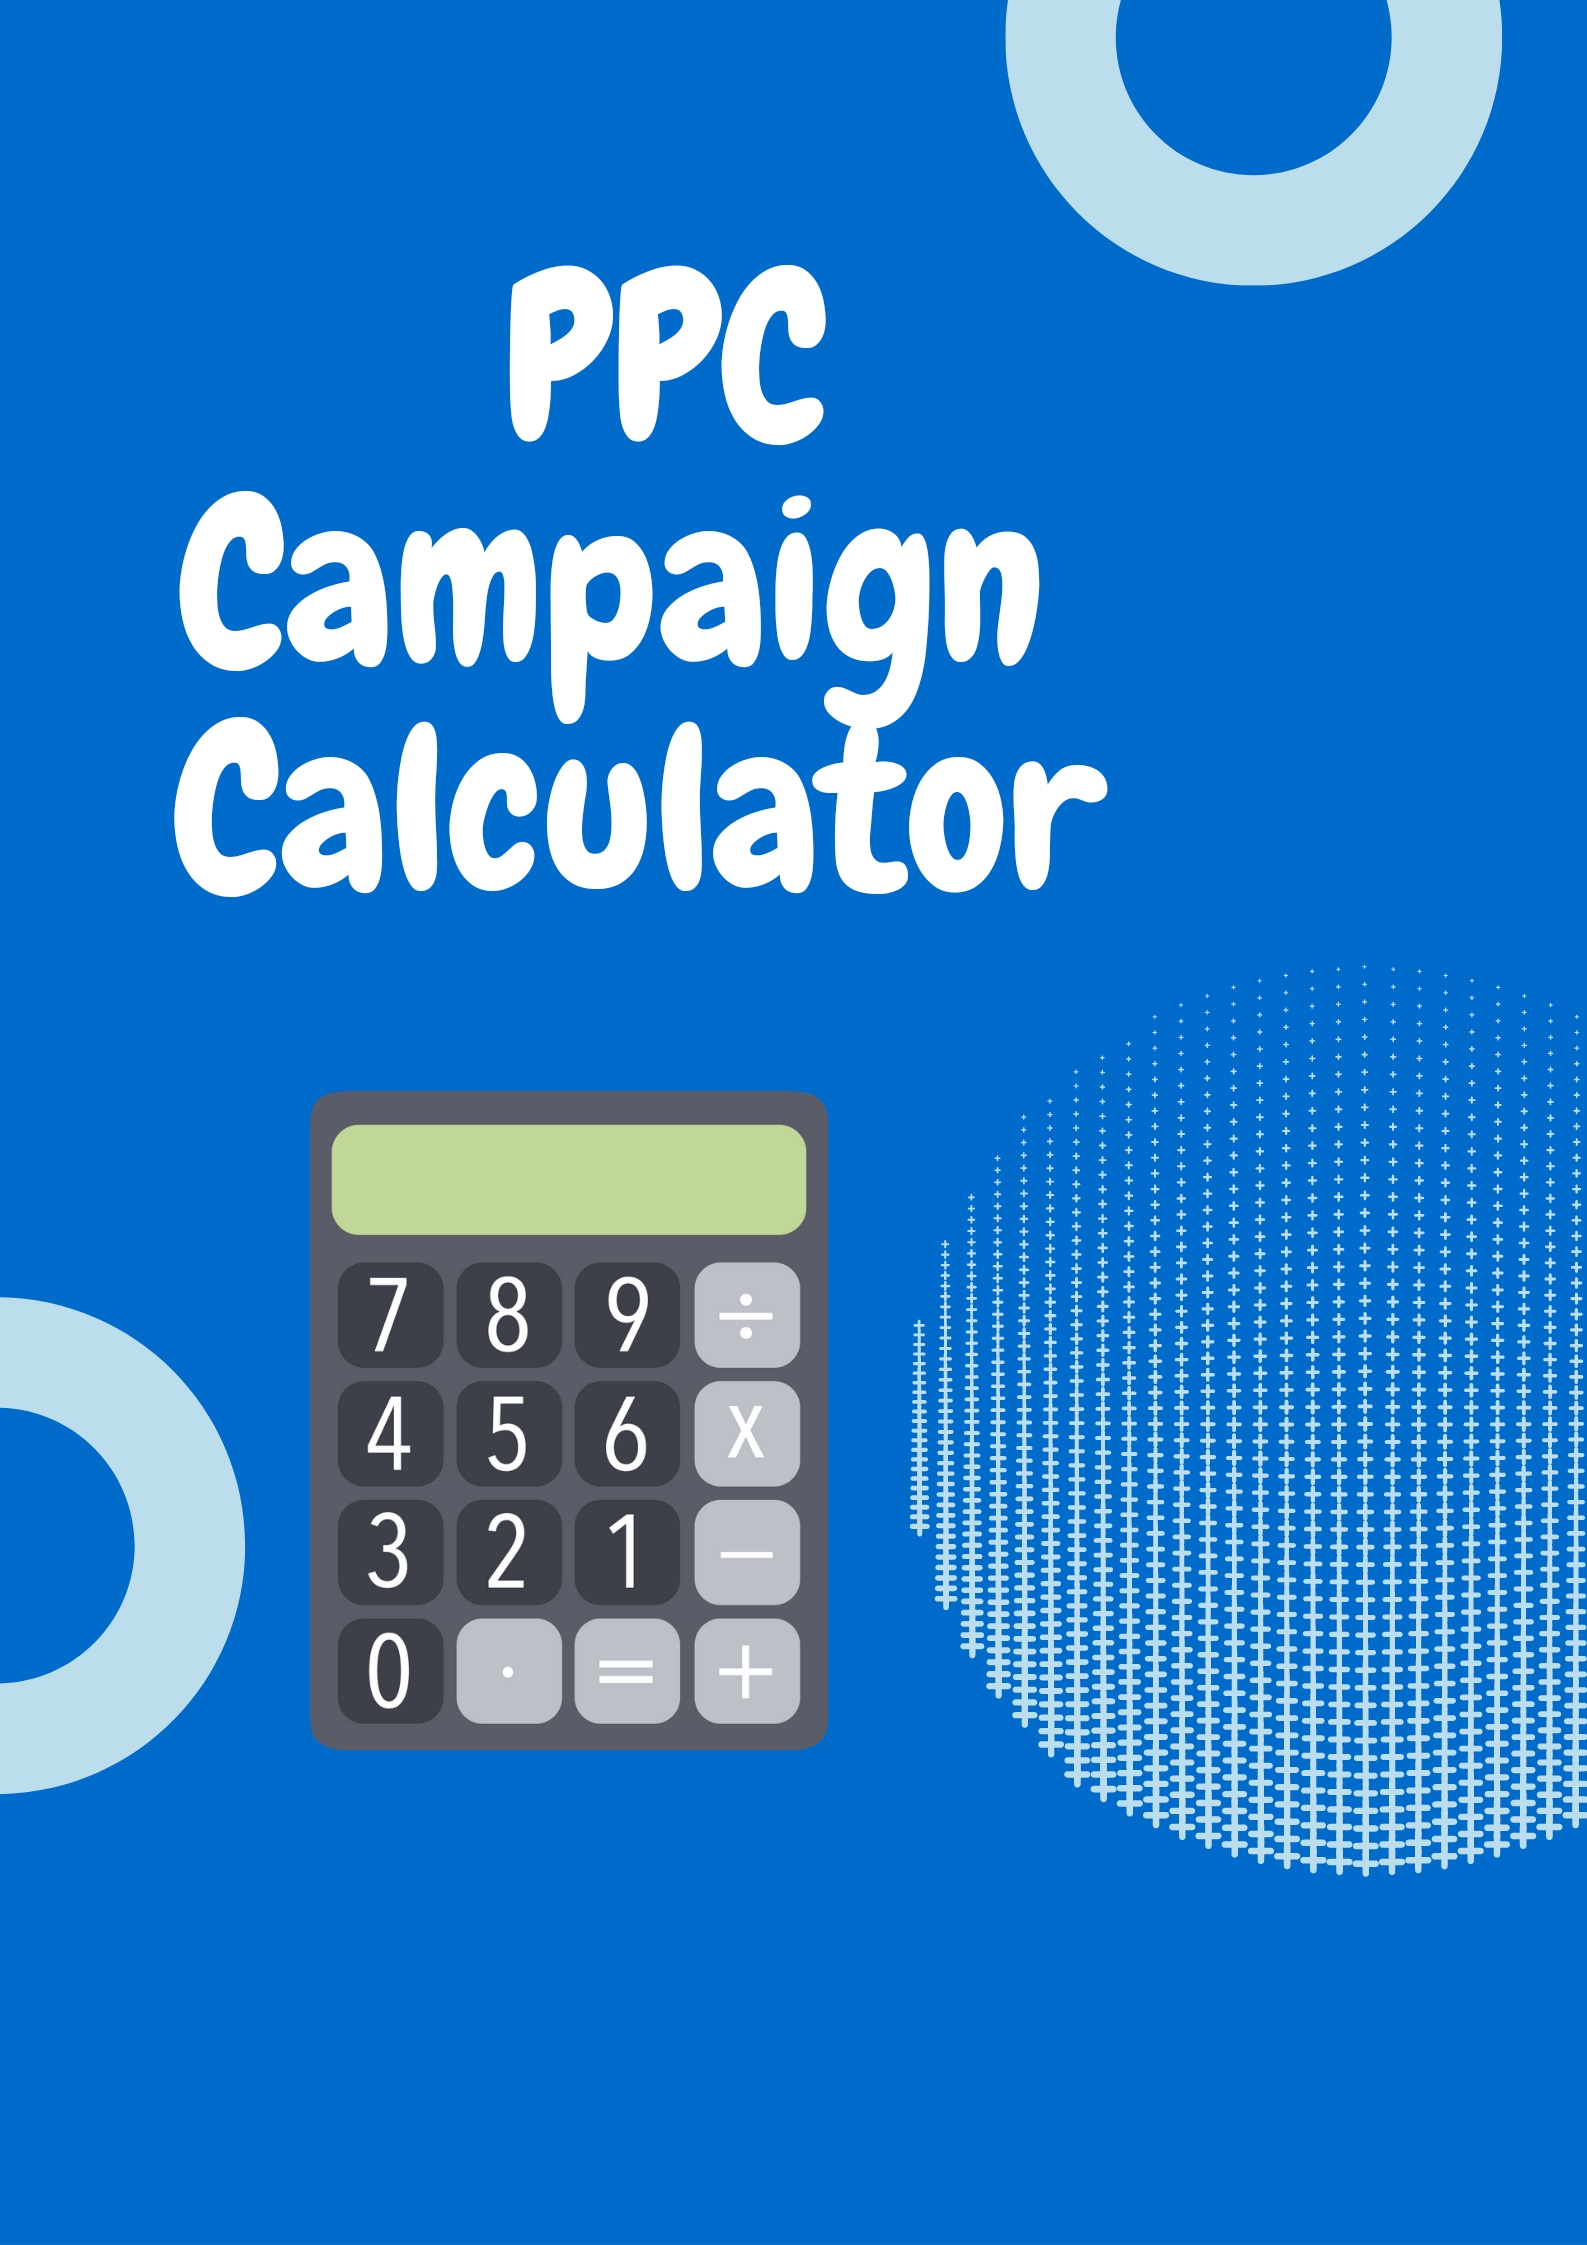 Campaign PPC Calculator for Advertising